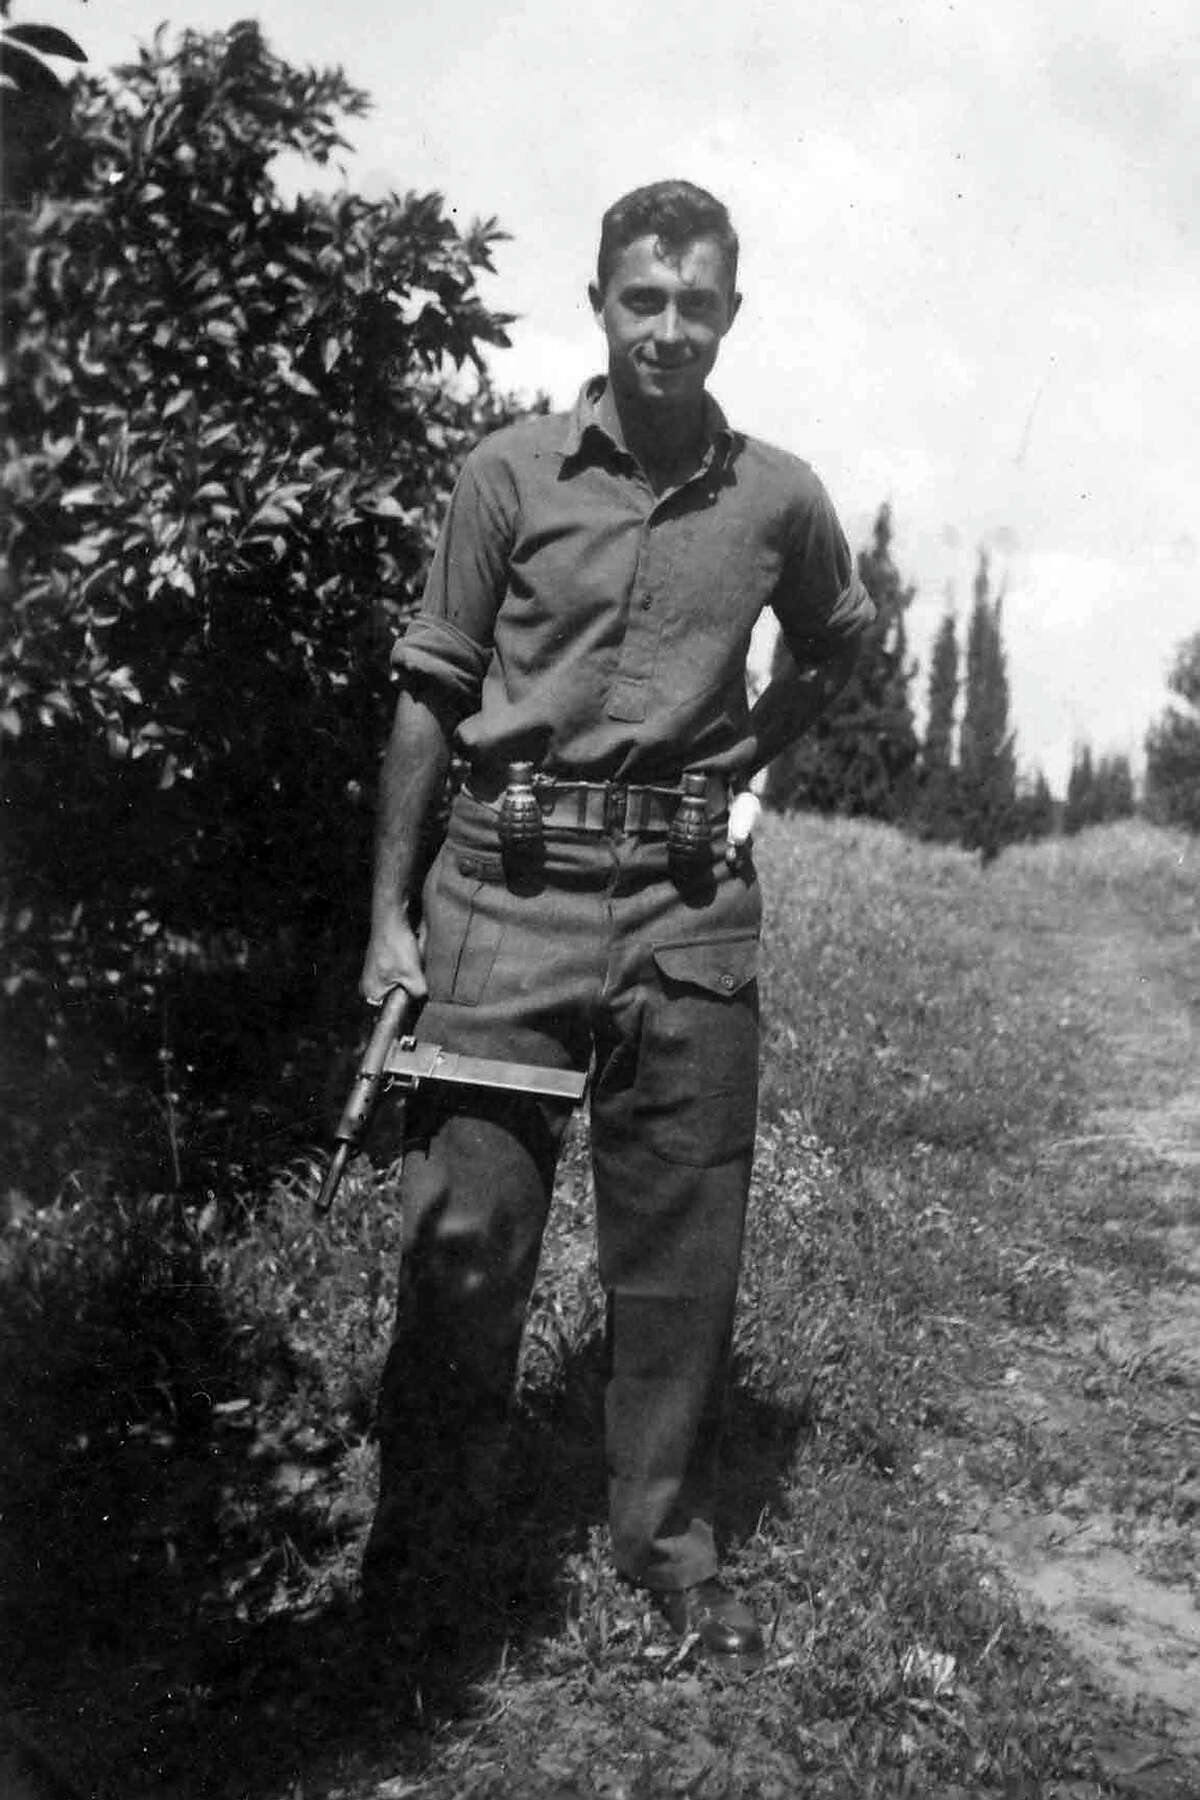 Ariel Sharon holds a Sten gun as a young commander in the Alexandroni Brigade of the fledging Israeli army during the War of Independence in 1948.